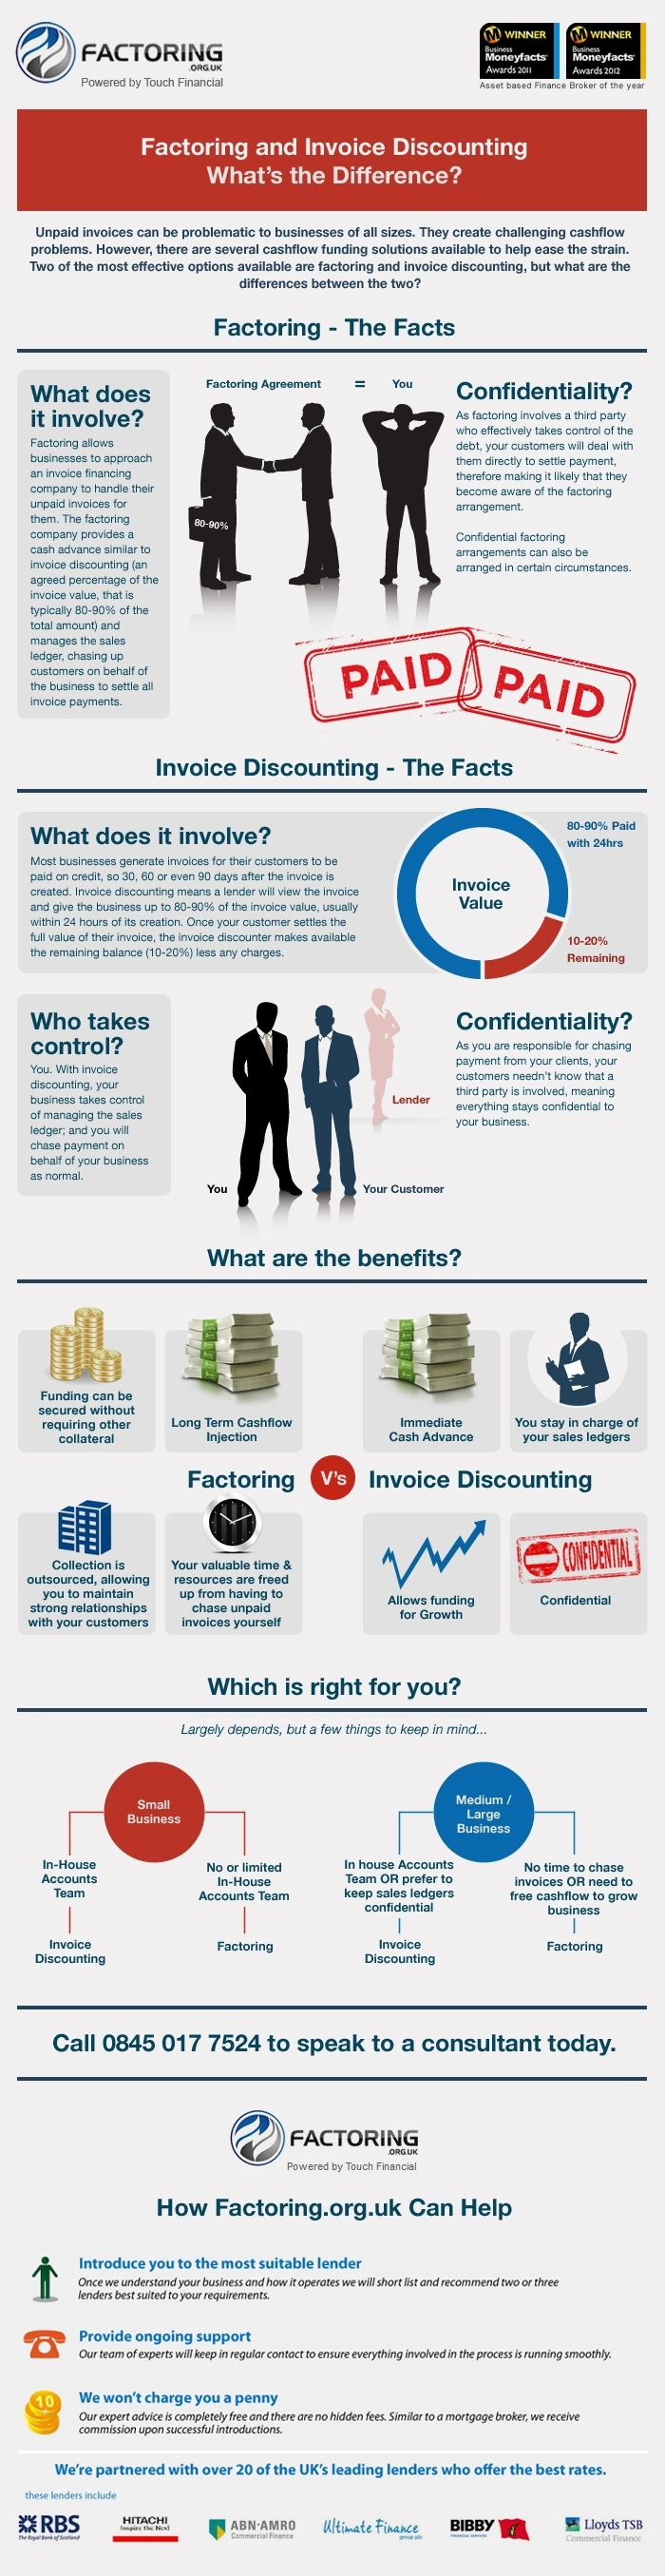 factoring and invoice discounting invoice template free 2016 invoice discounting and factoring